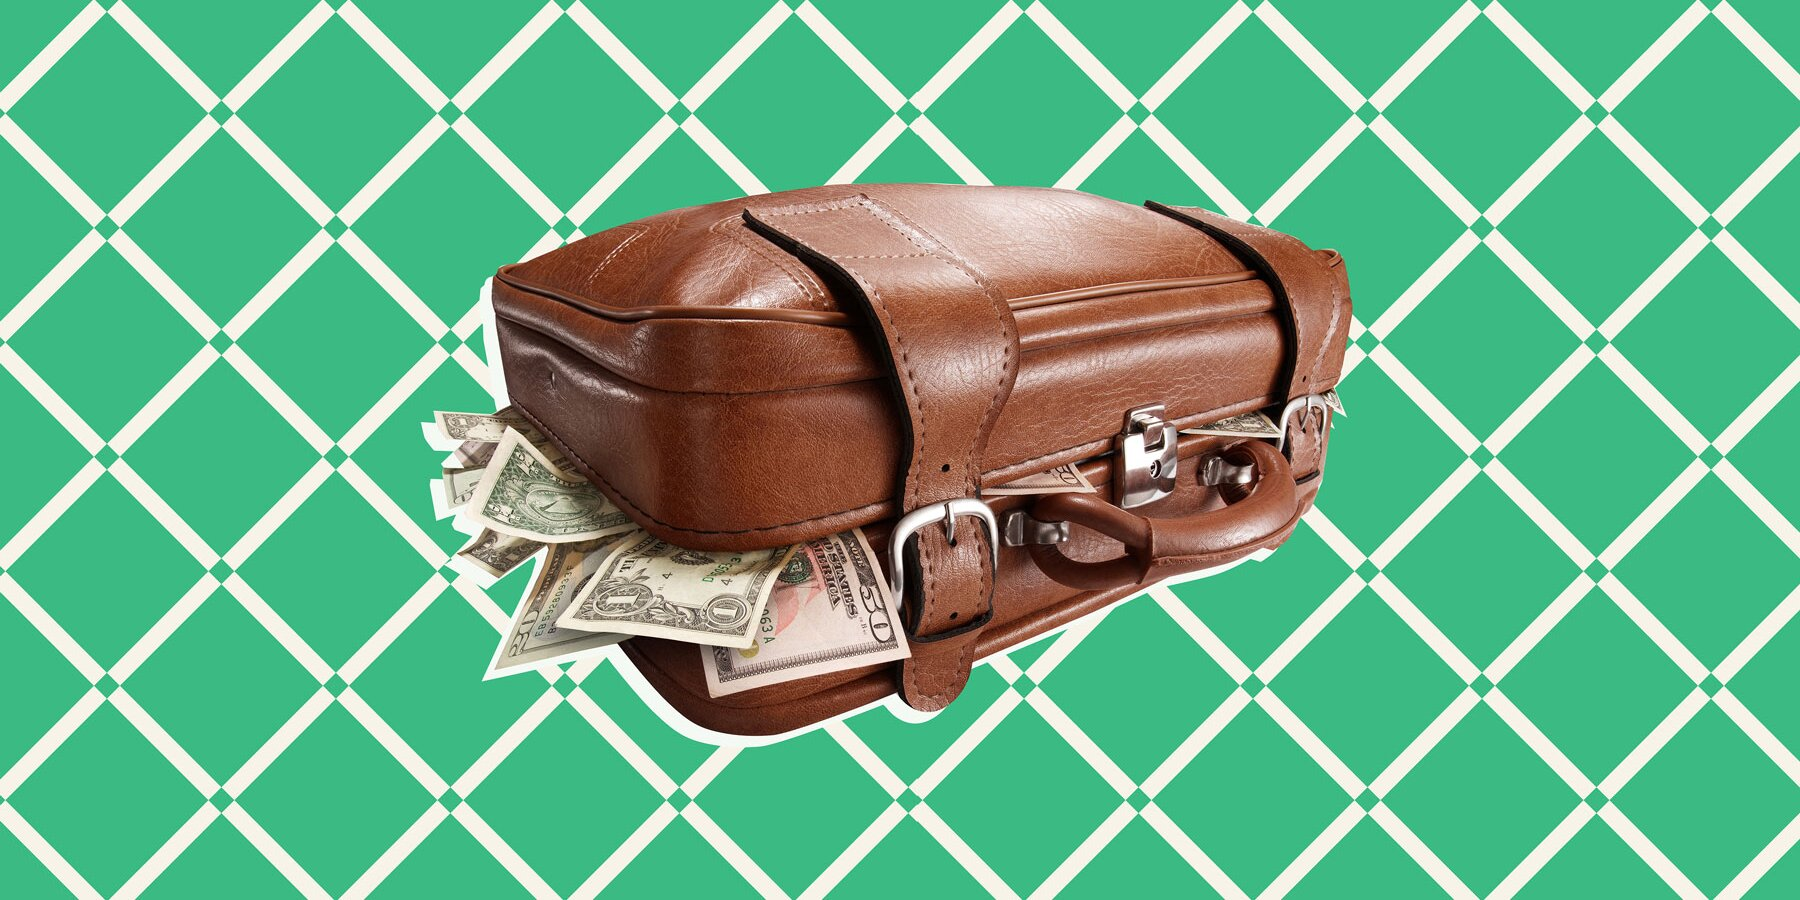 This $13 Trick Has Saved Me $300 on Carry-on Bag Fees